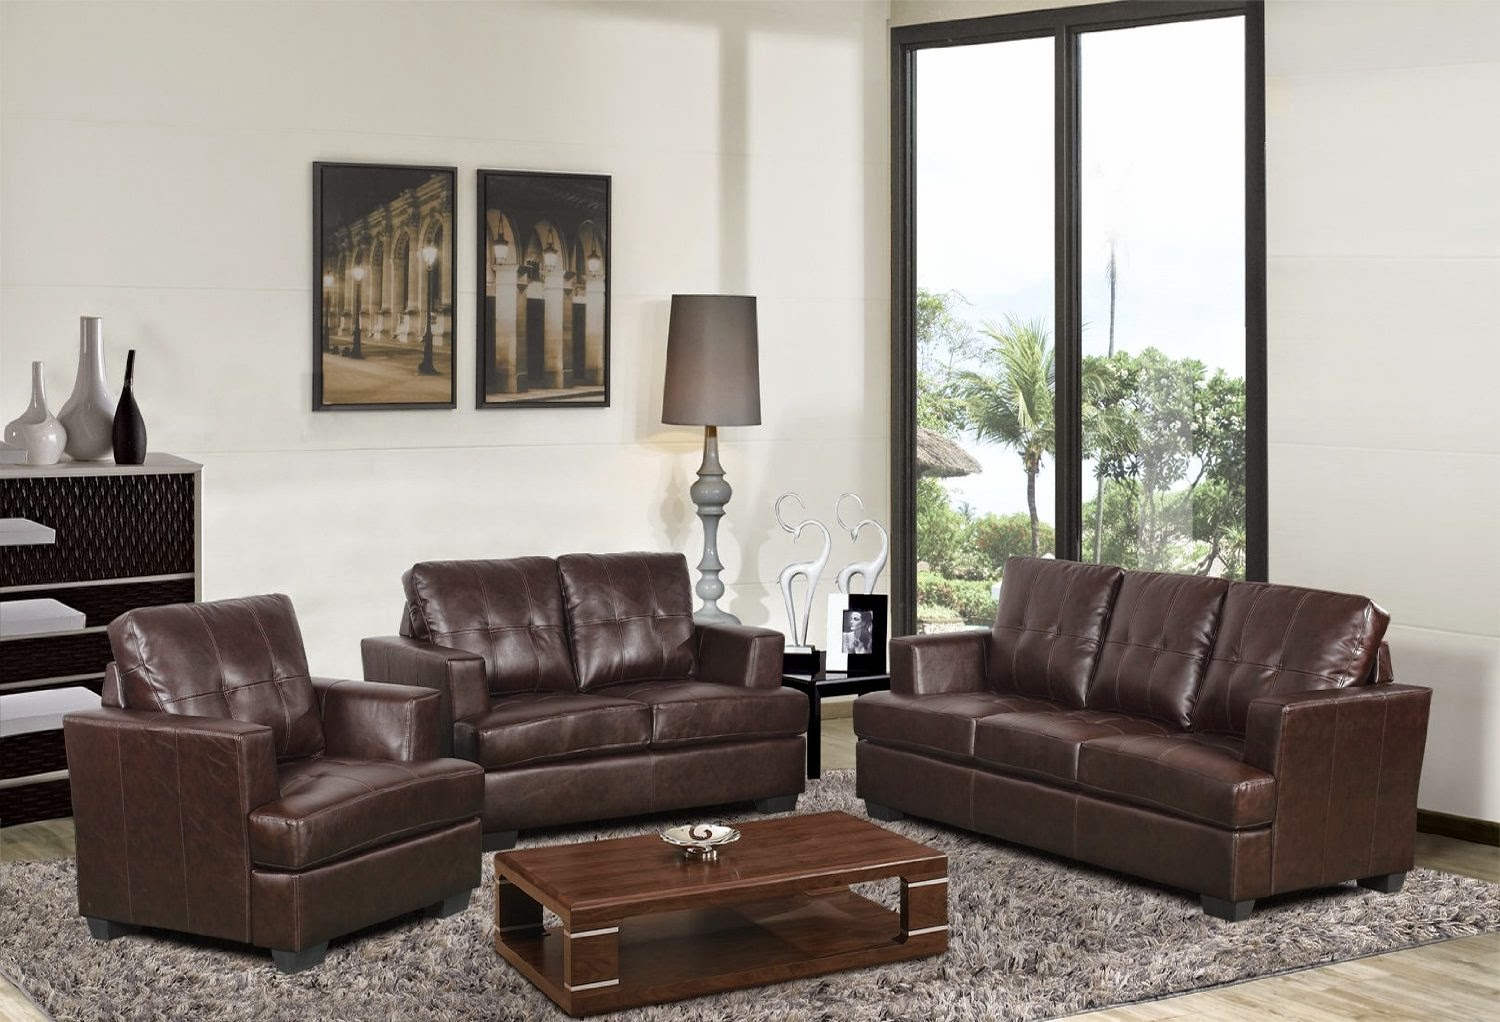 brown leather couch brown leather couch set